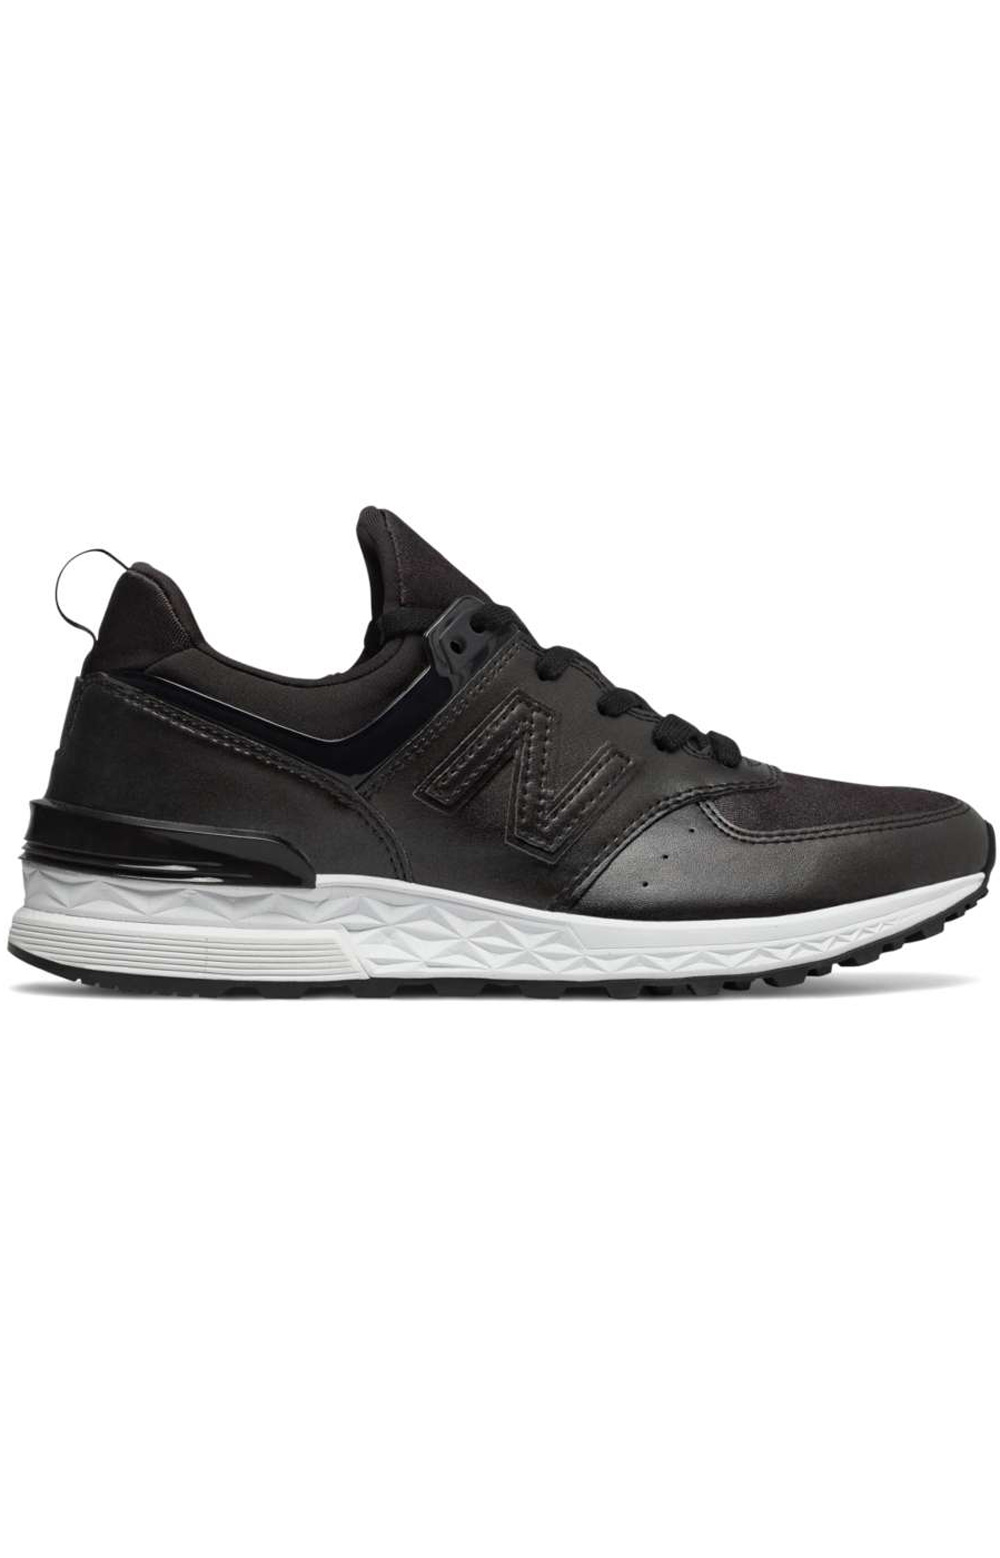 (WS574SFH) 574 Sport Shoe - Black